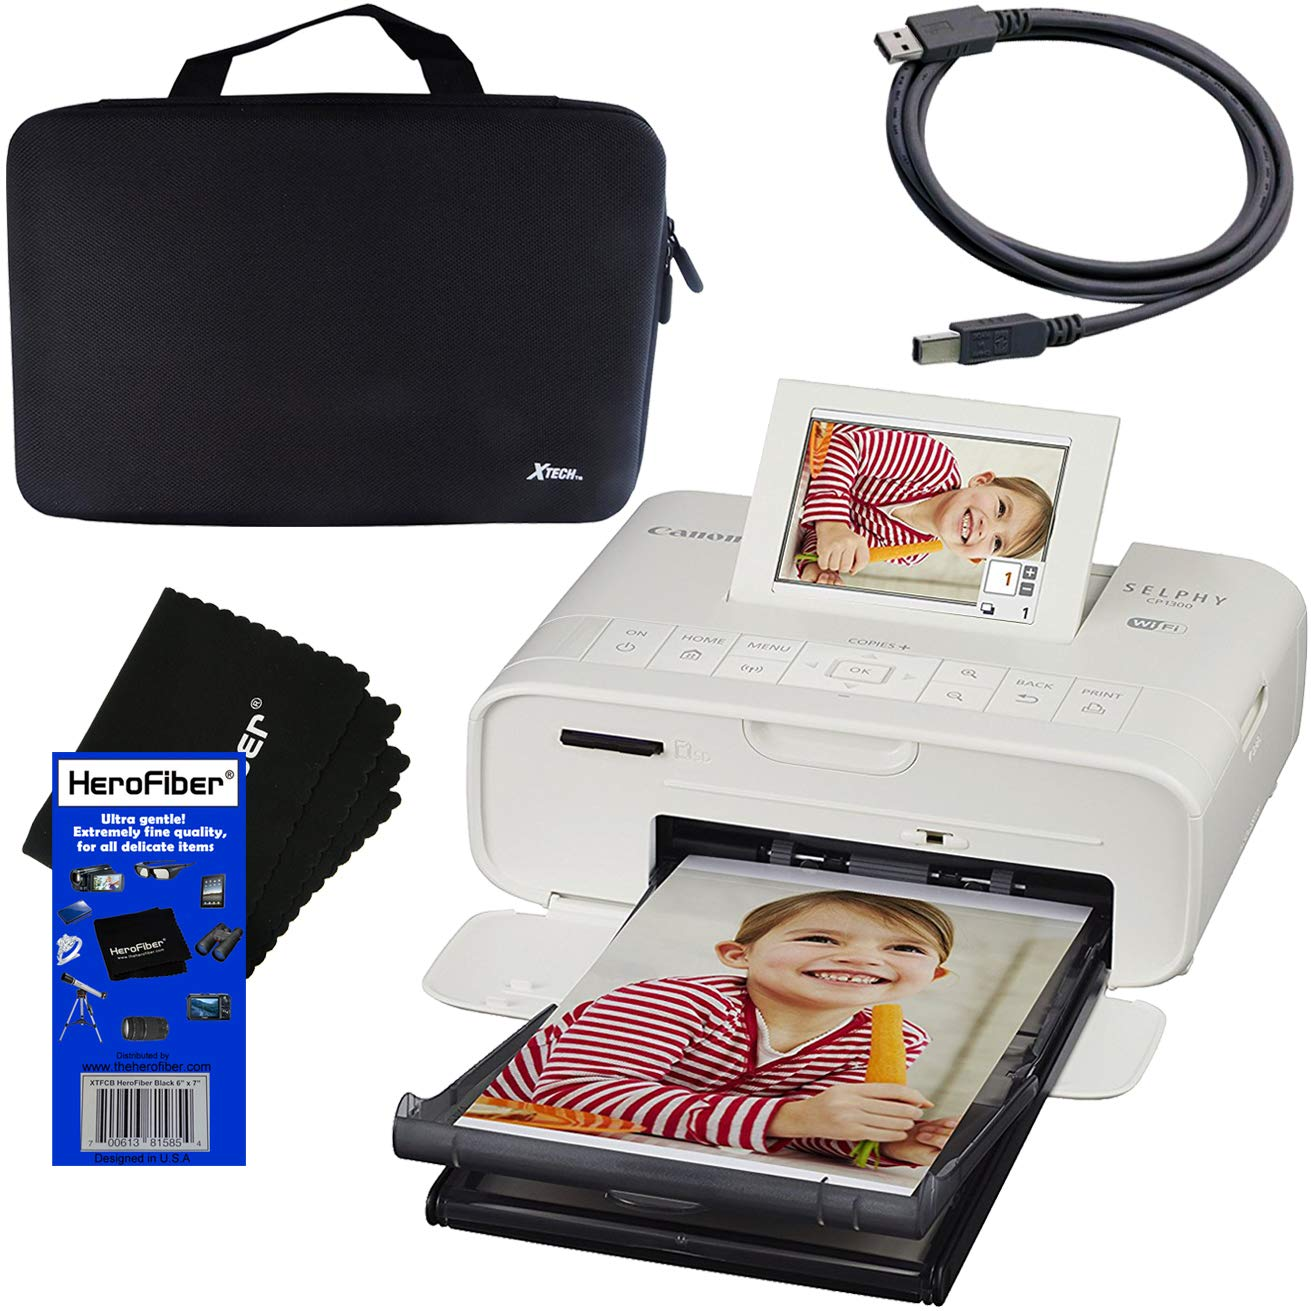 Canon SELPHY CP1300 Wireless Compact Photo Printer (White) + Xtech Custom Hard Compact Case + USB Printer Cable + HeroFiber Cleaning Cloth by HeroFiber